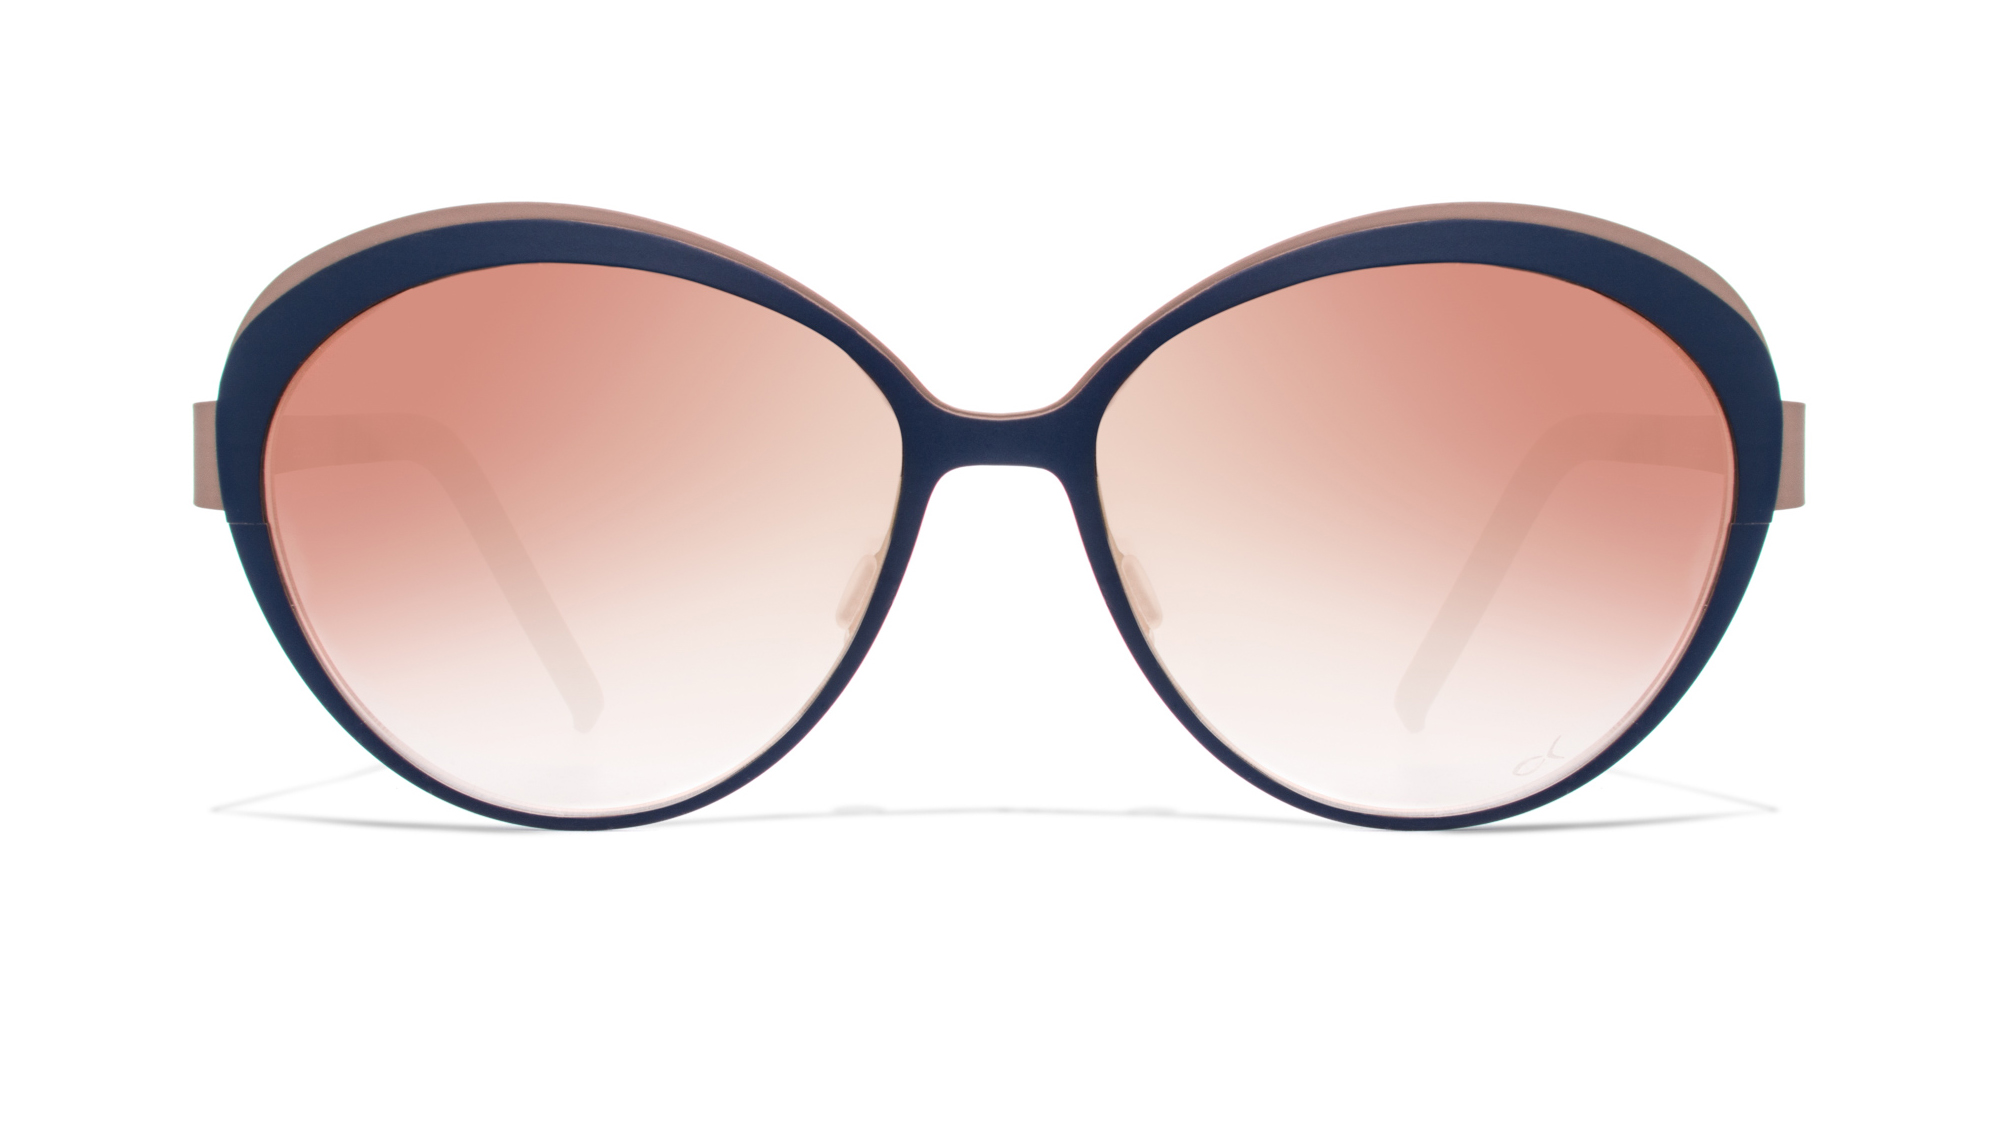 Blackfin | frame: Martinique BF778 Col.608